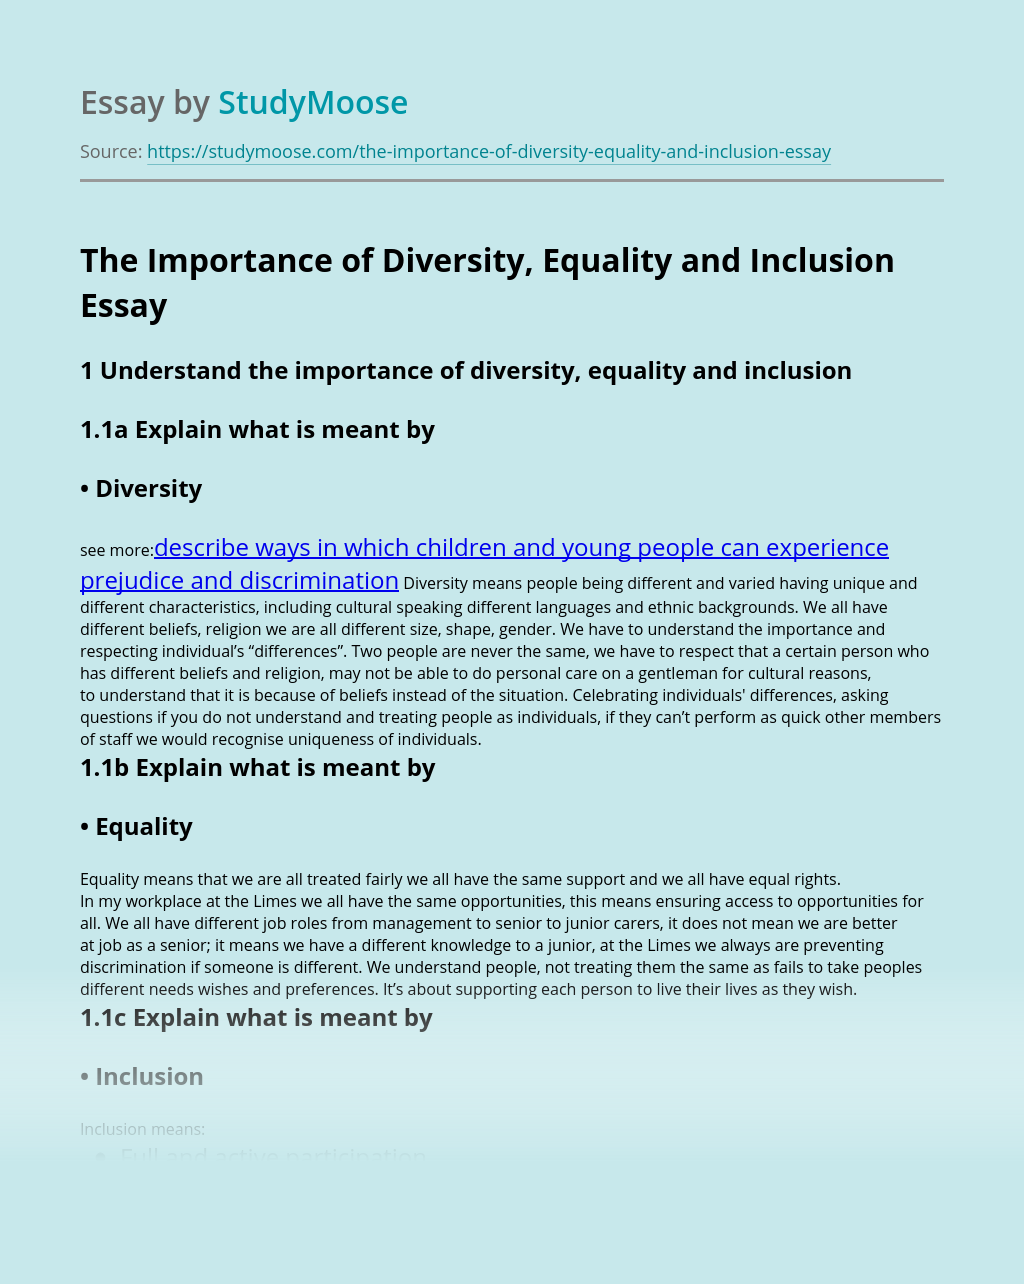 The Importance of Diversity, Equality and Inclusion